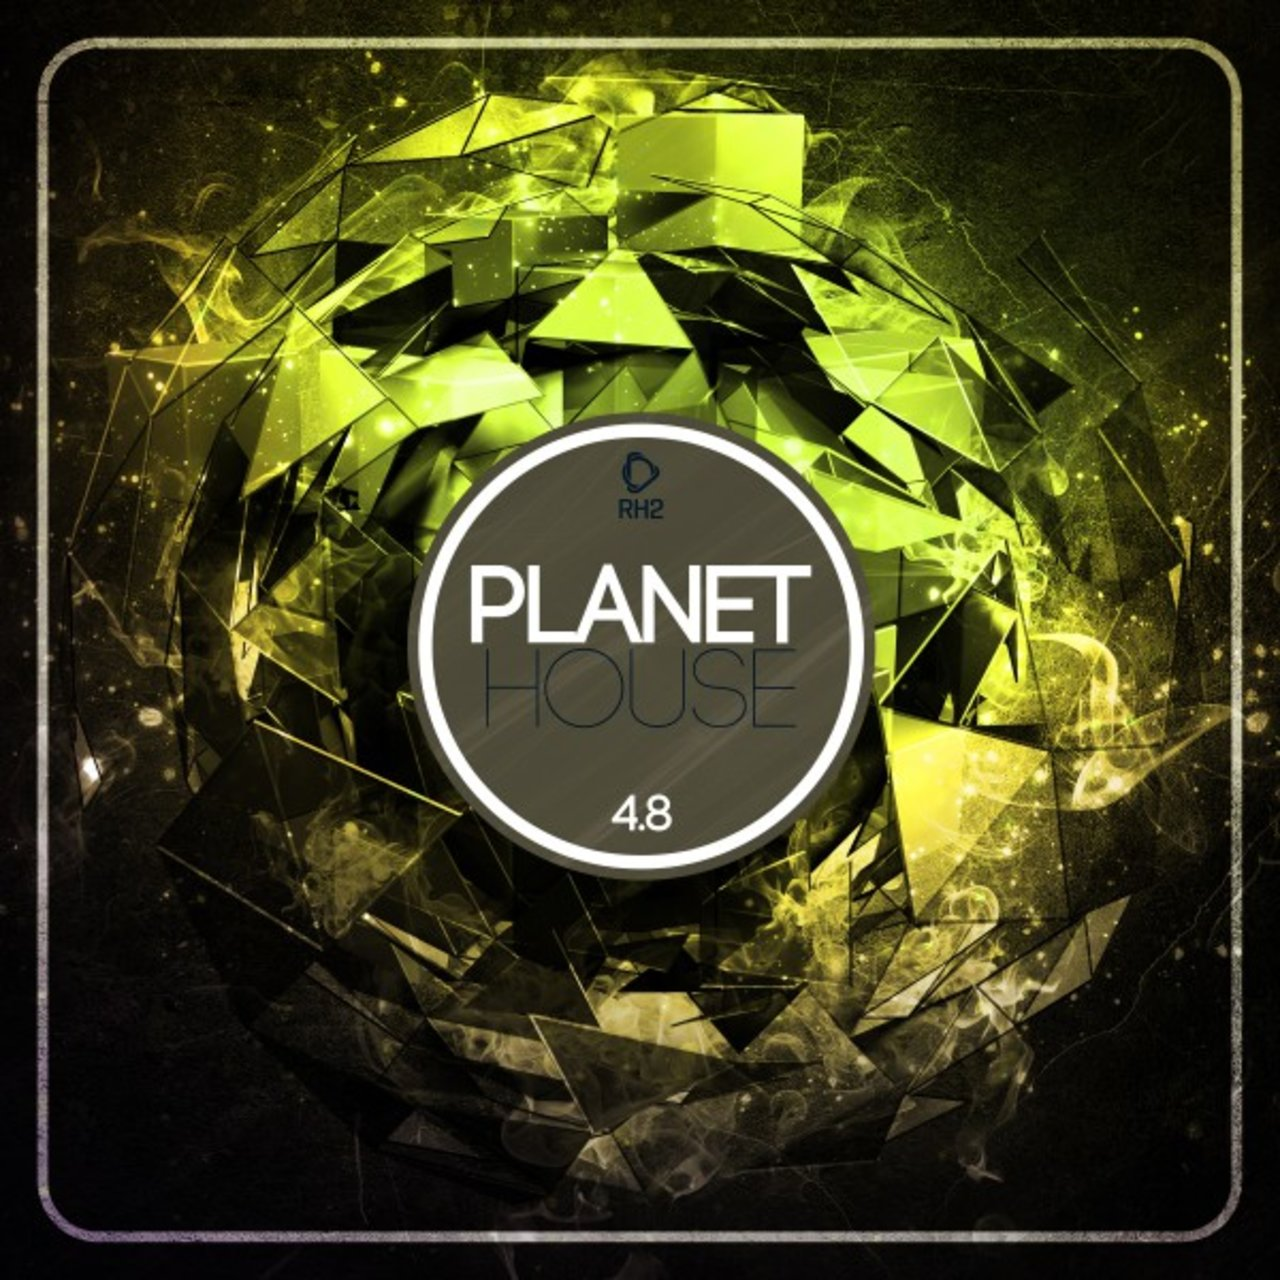 Planet House 4.8